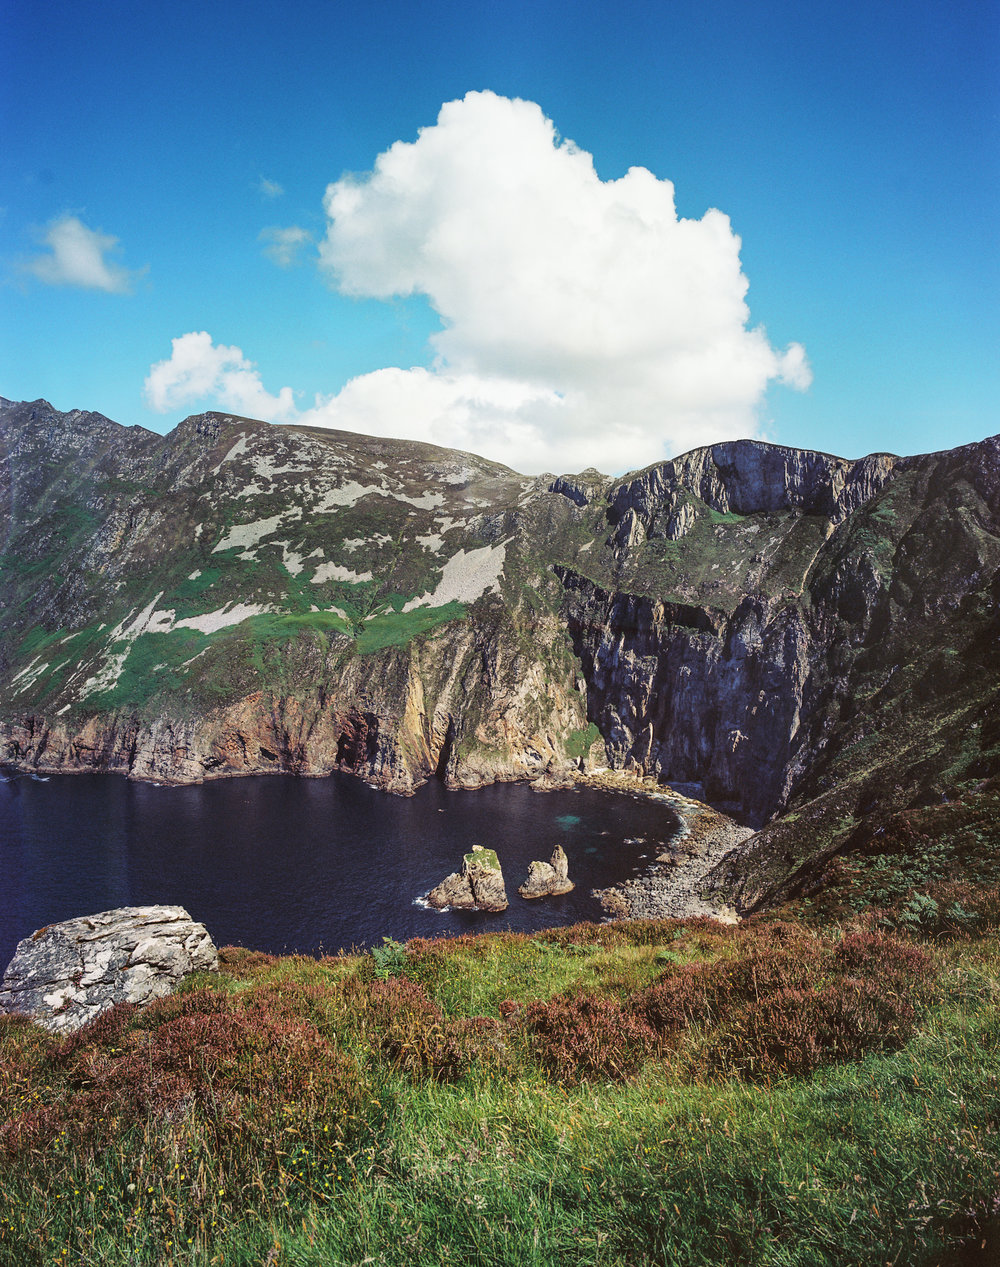 Medium format film photo.The lesser known cliffs of Ireland; Slieve League, 609m (1,998 feet) tall. The Cliffs of Moher are only 214m (702 feet) tall.